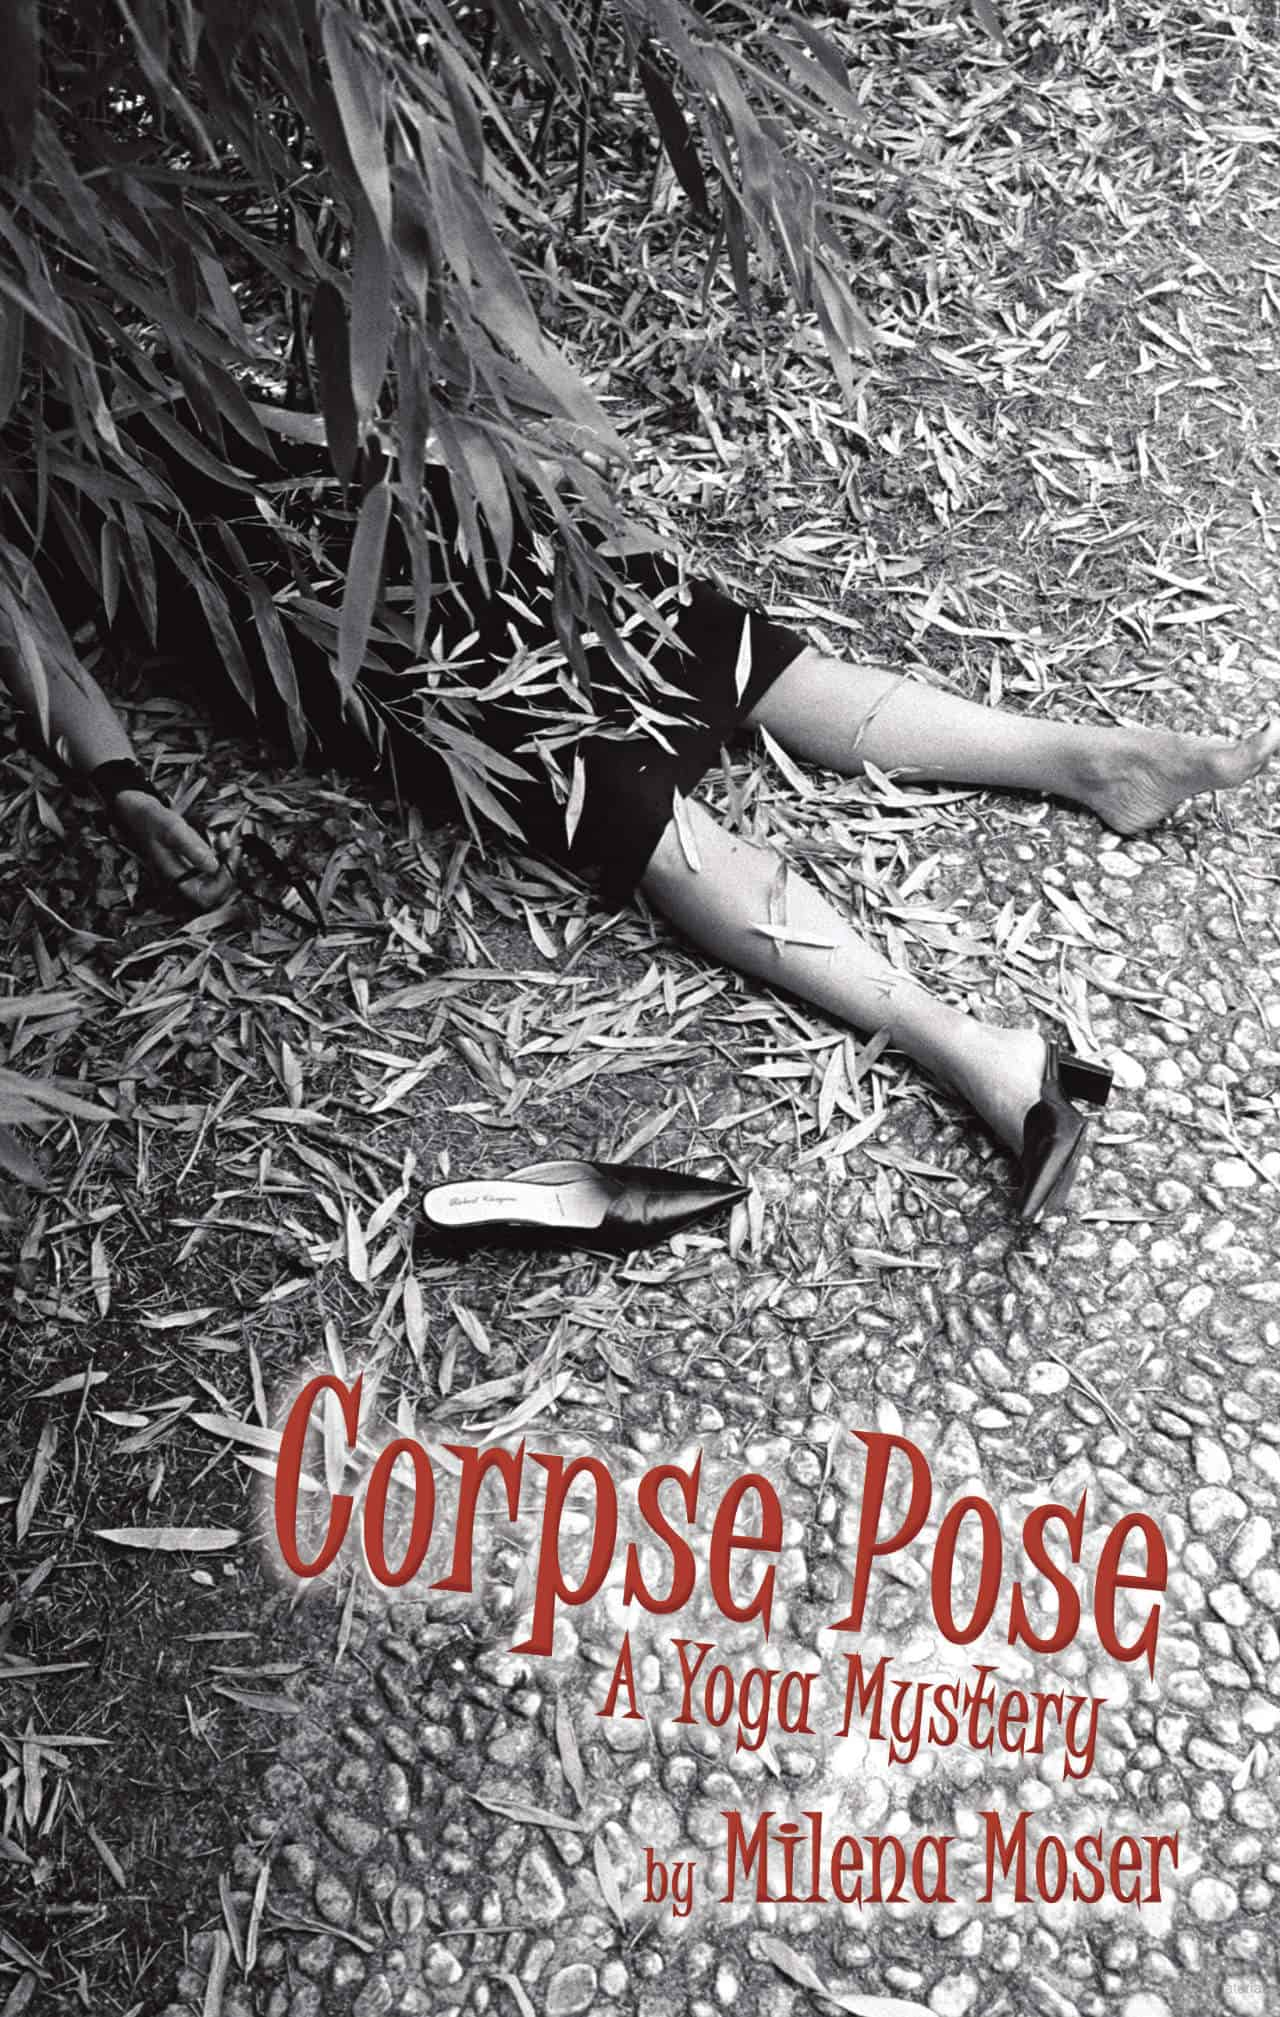 Corpse Pose, A Yoga Mystery